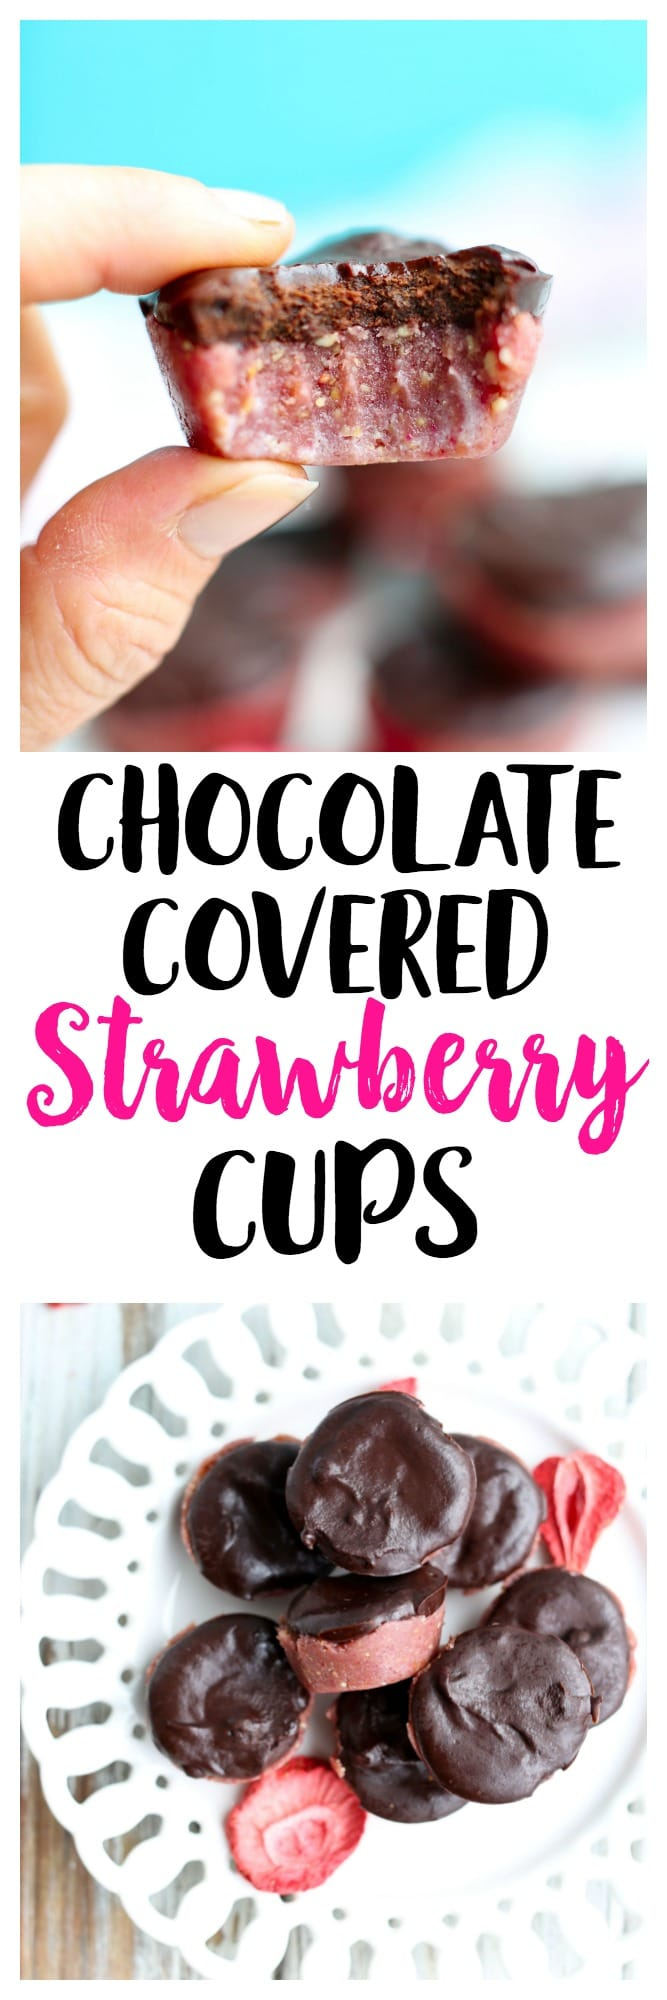 Chocolate Covered Strawberry CUPS recipe! This is a gluten-free, easily adapted to vegan recipe that makes a great healthy snack or dessert!